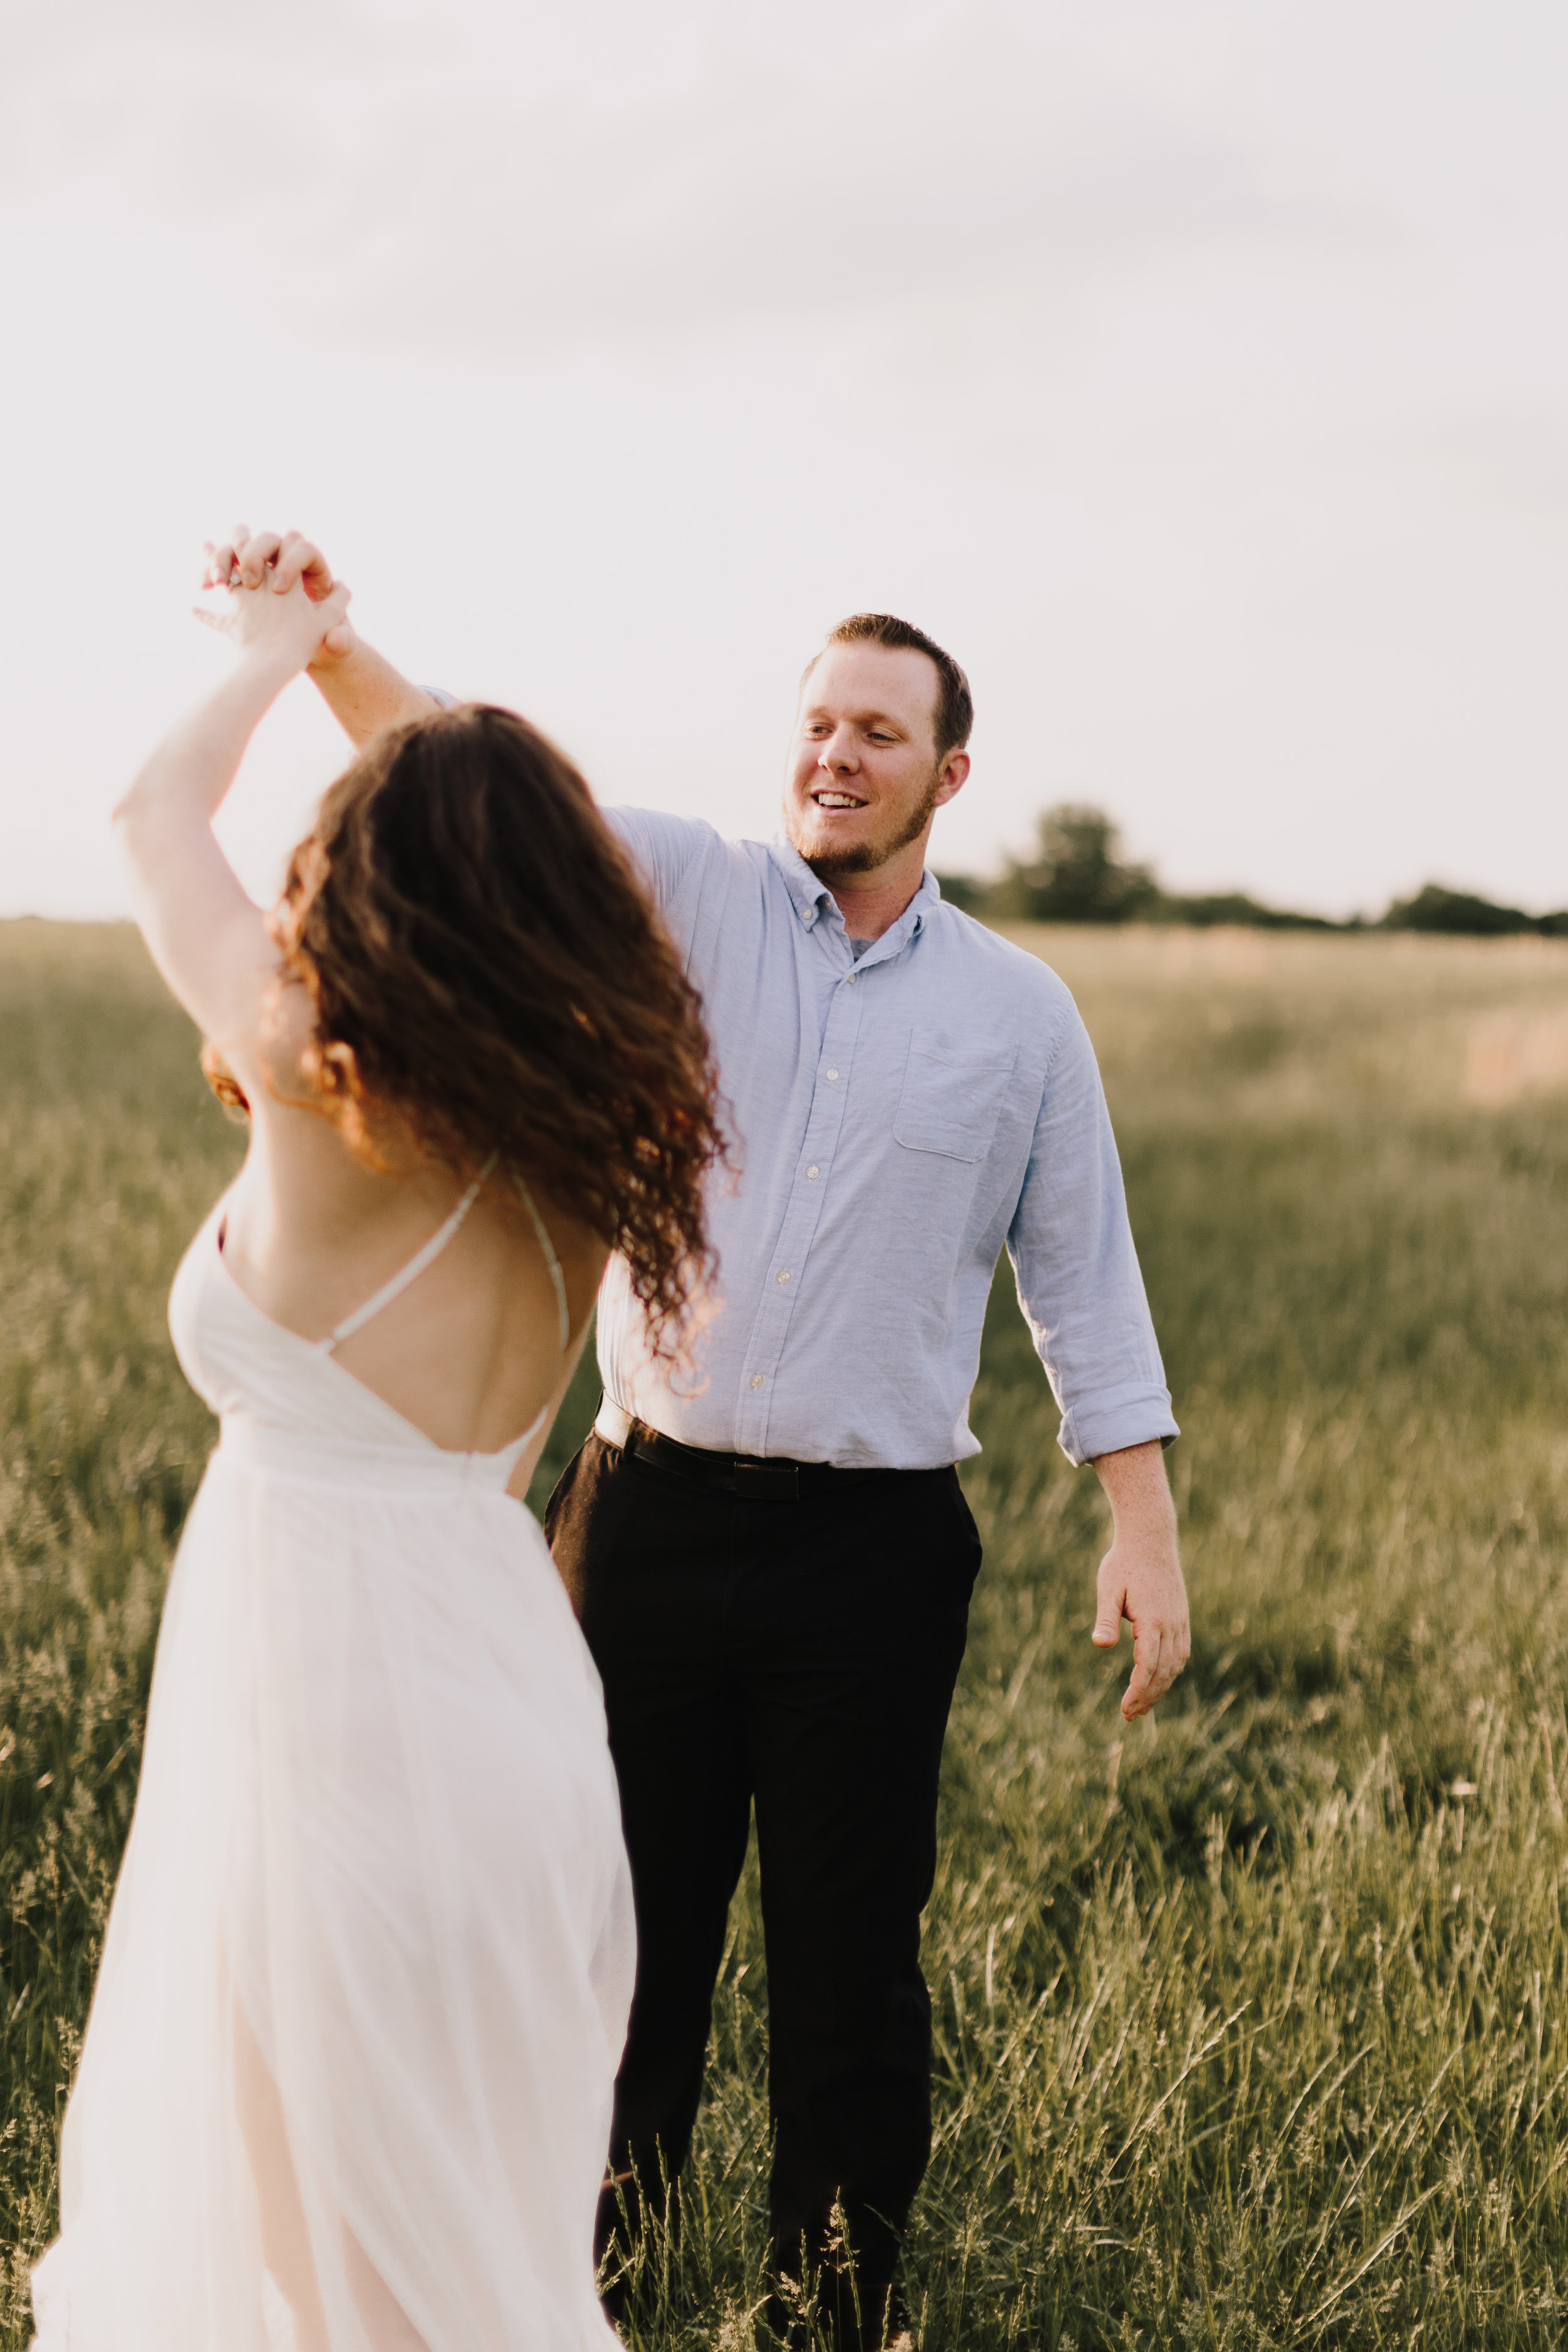 alyssa barletter photography summer shawnee mission park engagement session long maxi dress outfit chapman-9.jpg